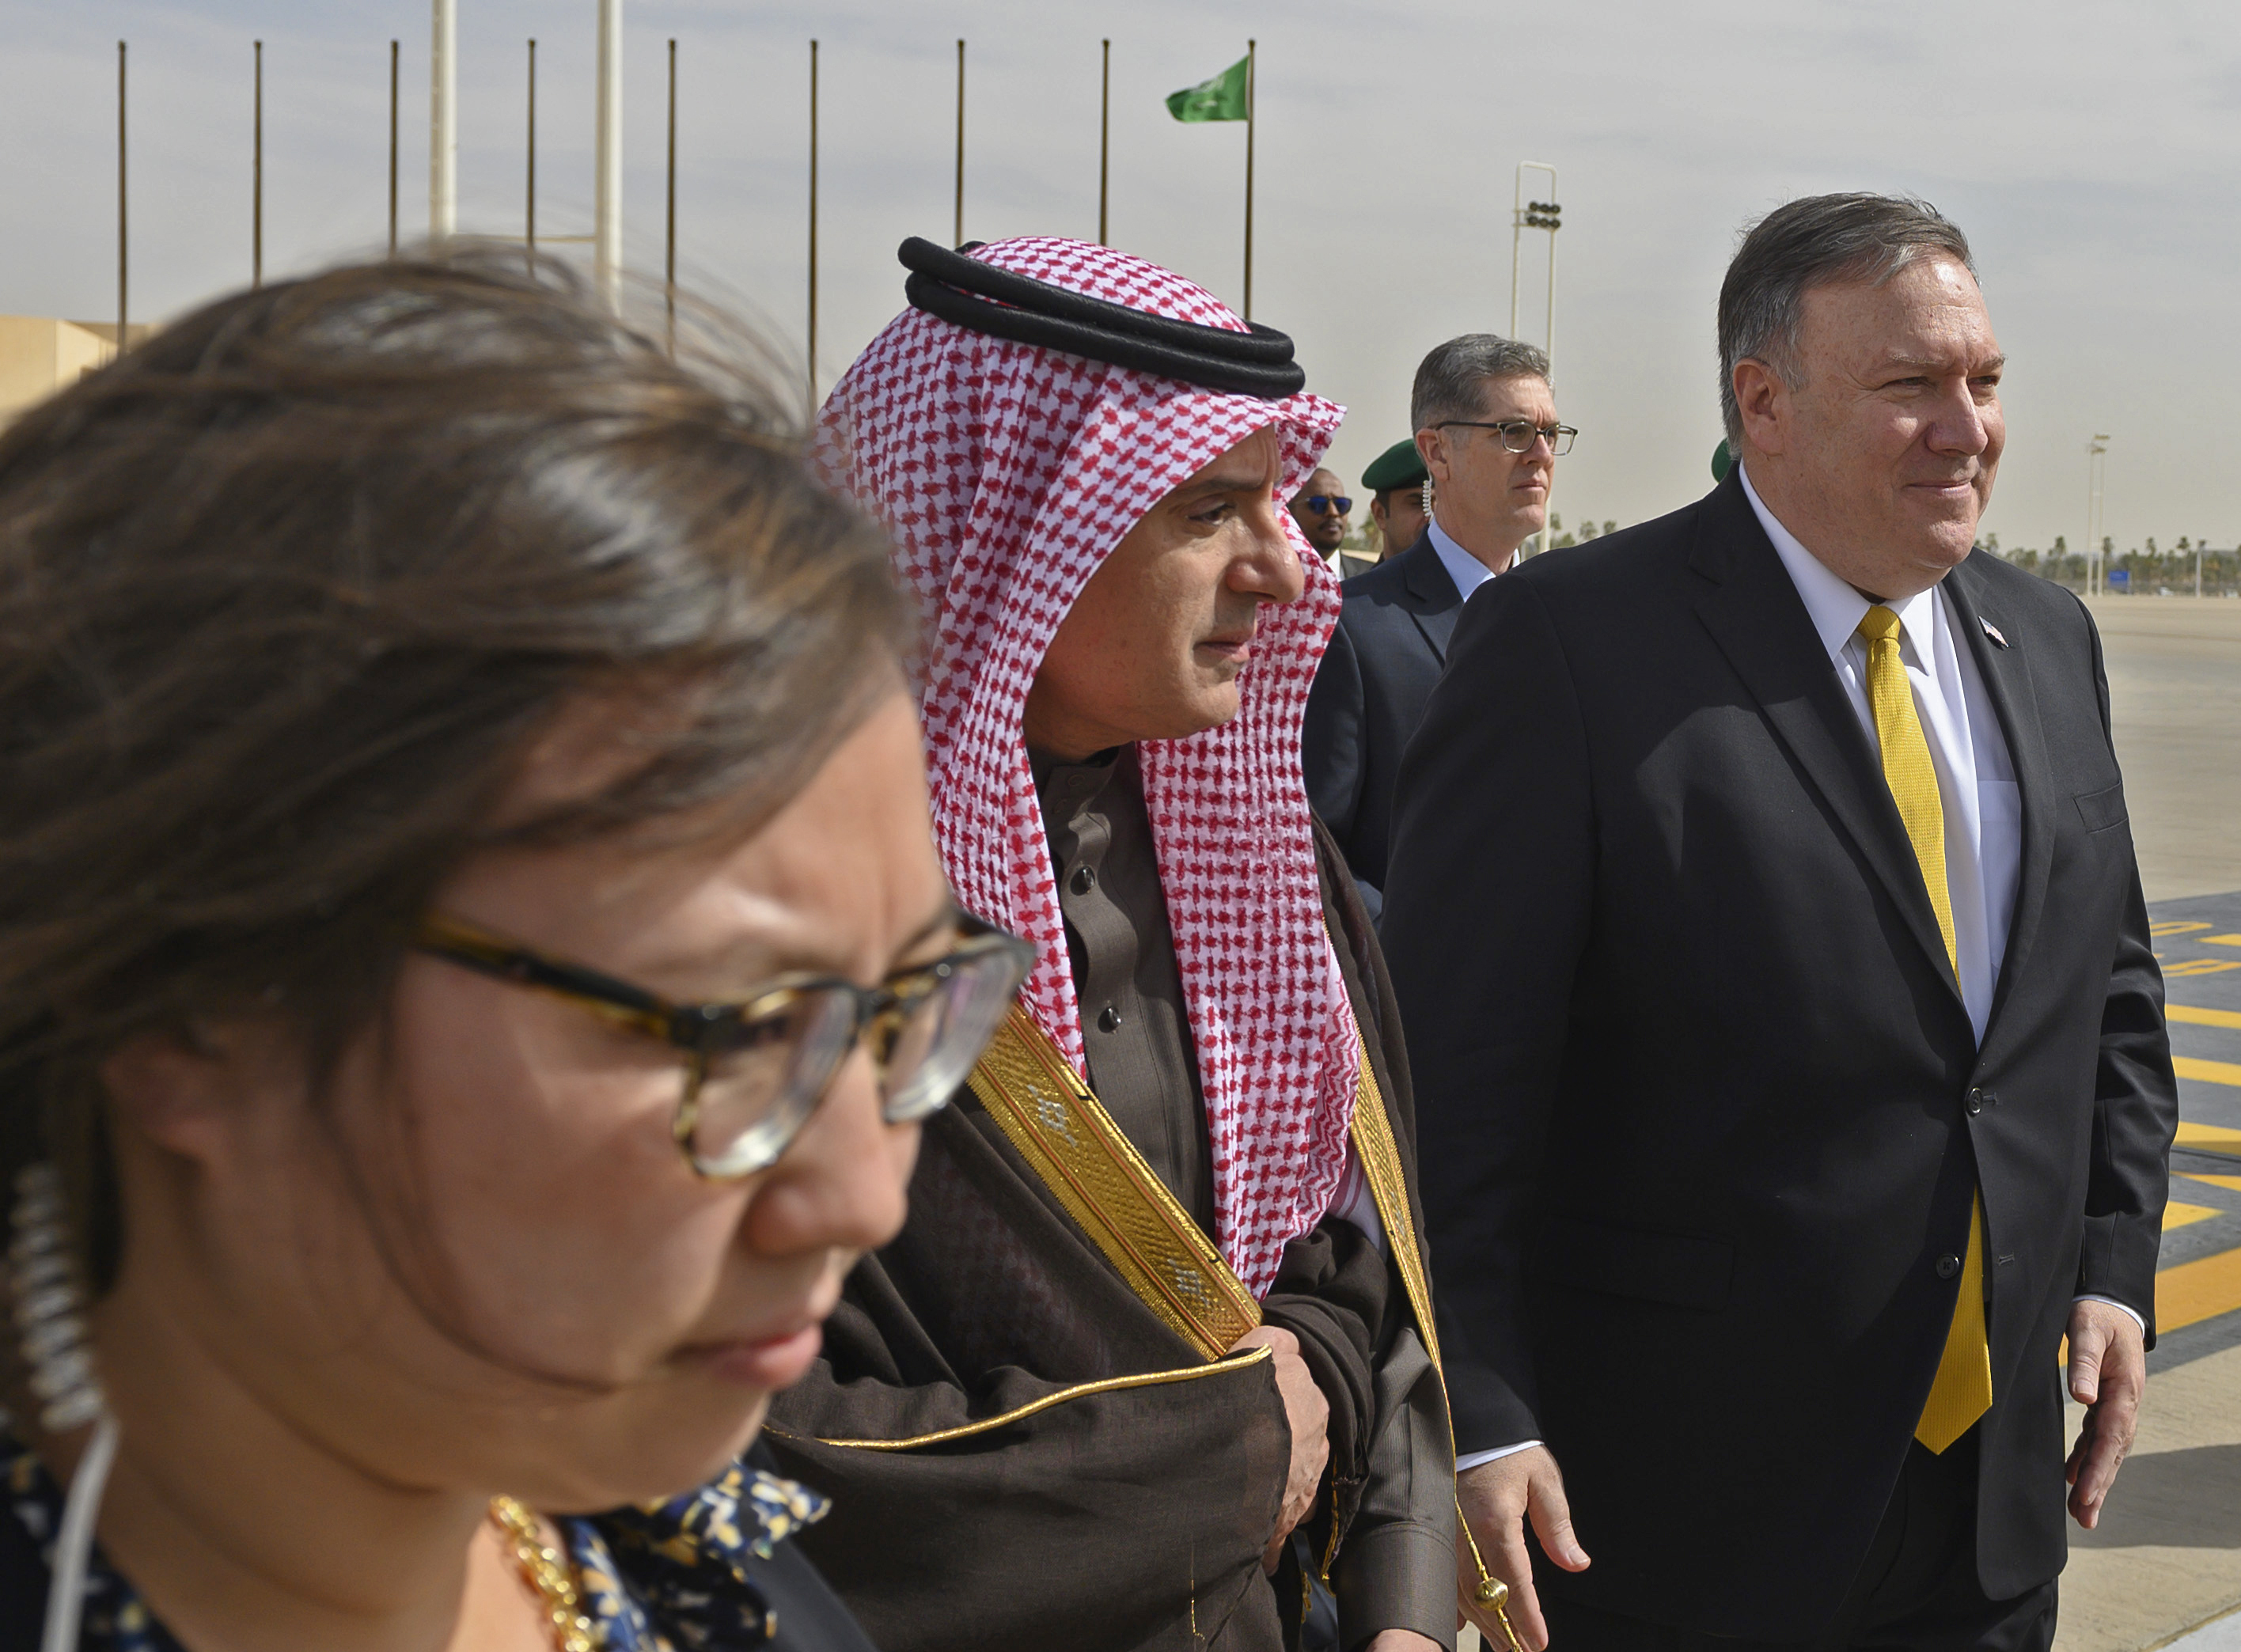 U.S. Secretary of State Mike Pompeo, right, is accompanied by Saudi Minister of State for Foreign Affairs Adel al-Jubeir, center, as he departs from Saudi Arabia's King Khalid International, in Riyadh, Monday, January 14, 2019. (Andrew Cabellero-Reynolds/Pool via AP)